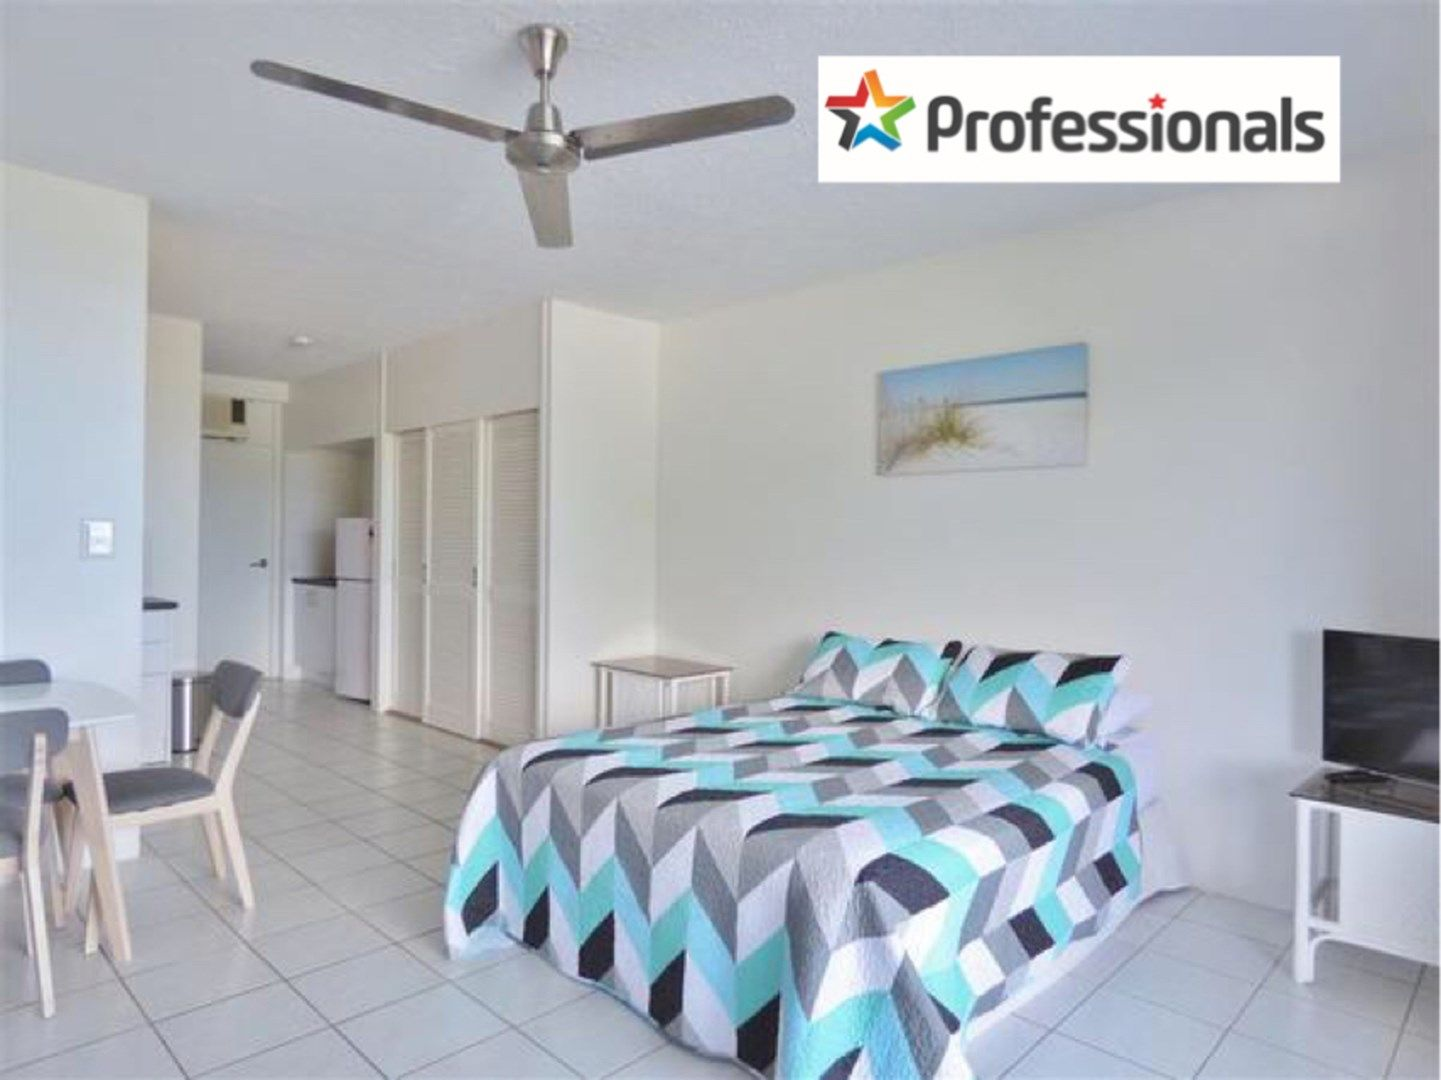 46A/5 Golden Orchid Drive, Airlie Beach QLD 4802, Image 0